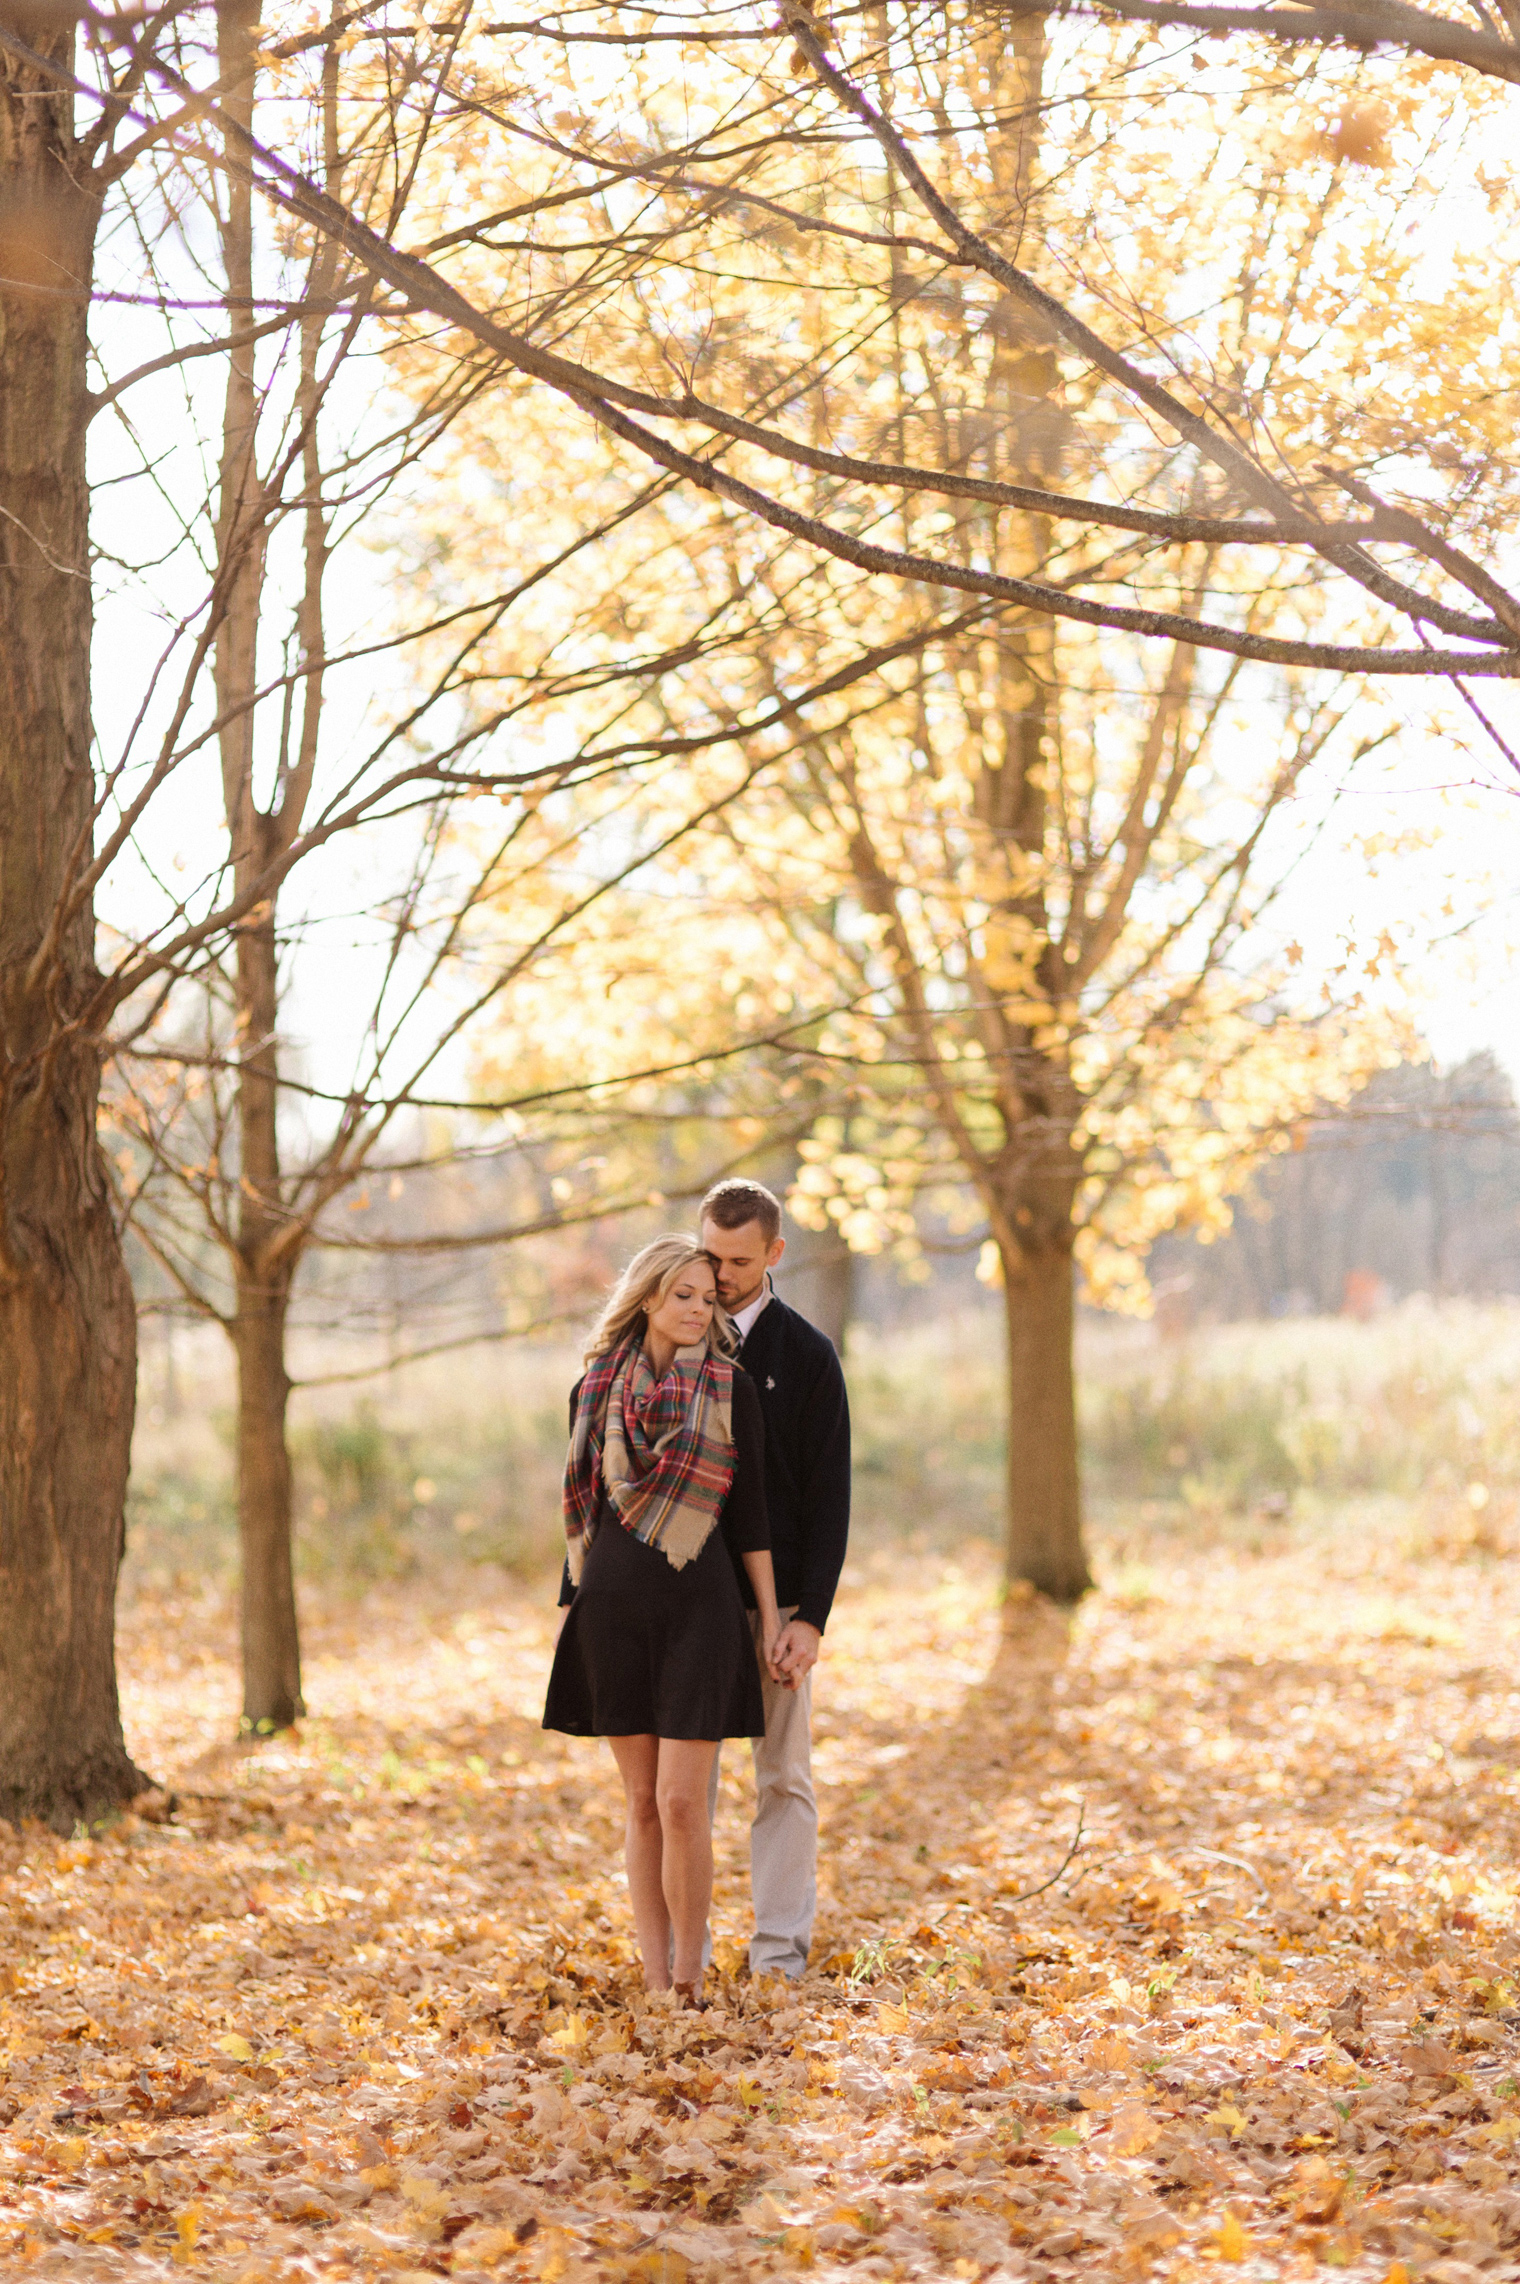 Rustic Fall Wallpaper Becky Jeremy And Fall In Michigan Detroit Wedding